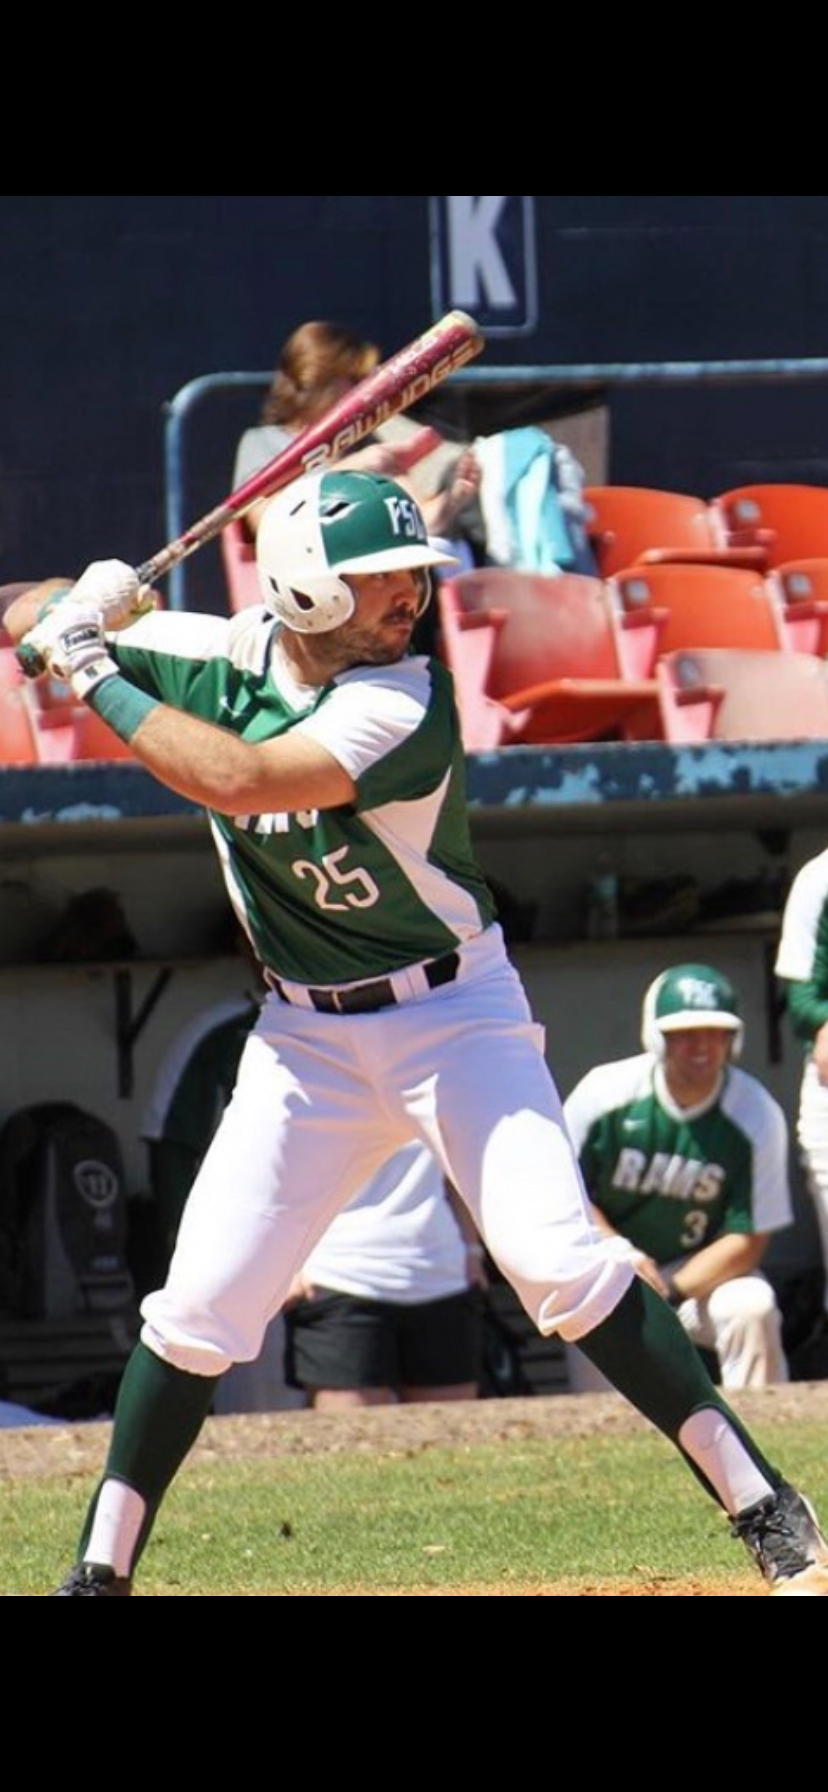 Ernie Geraci, former Westhampton Beach High School and Westhampton Aviators baseball player, signed with the Roswell Invaders of the Pecos League.